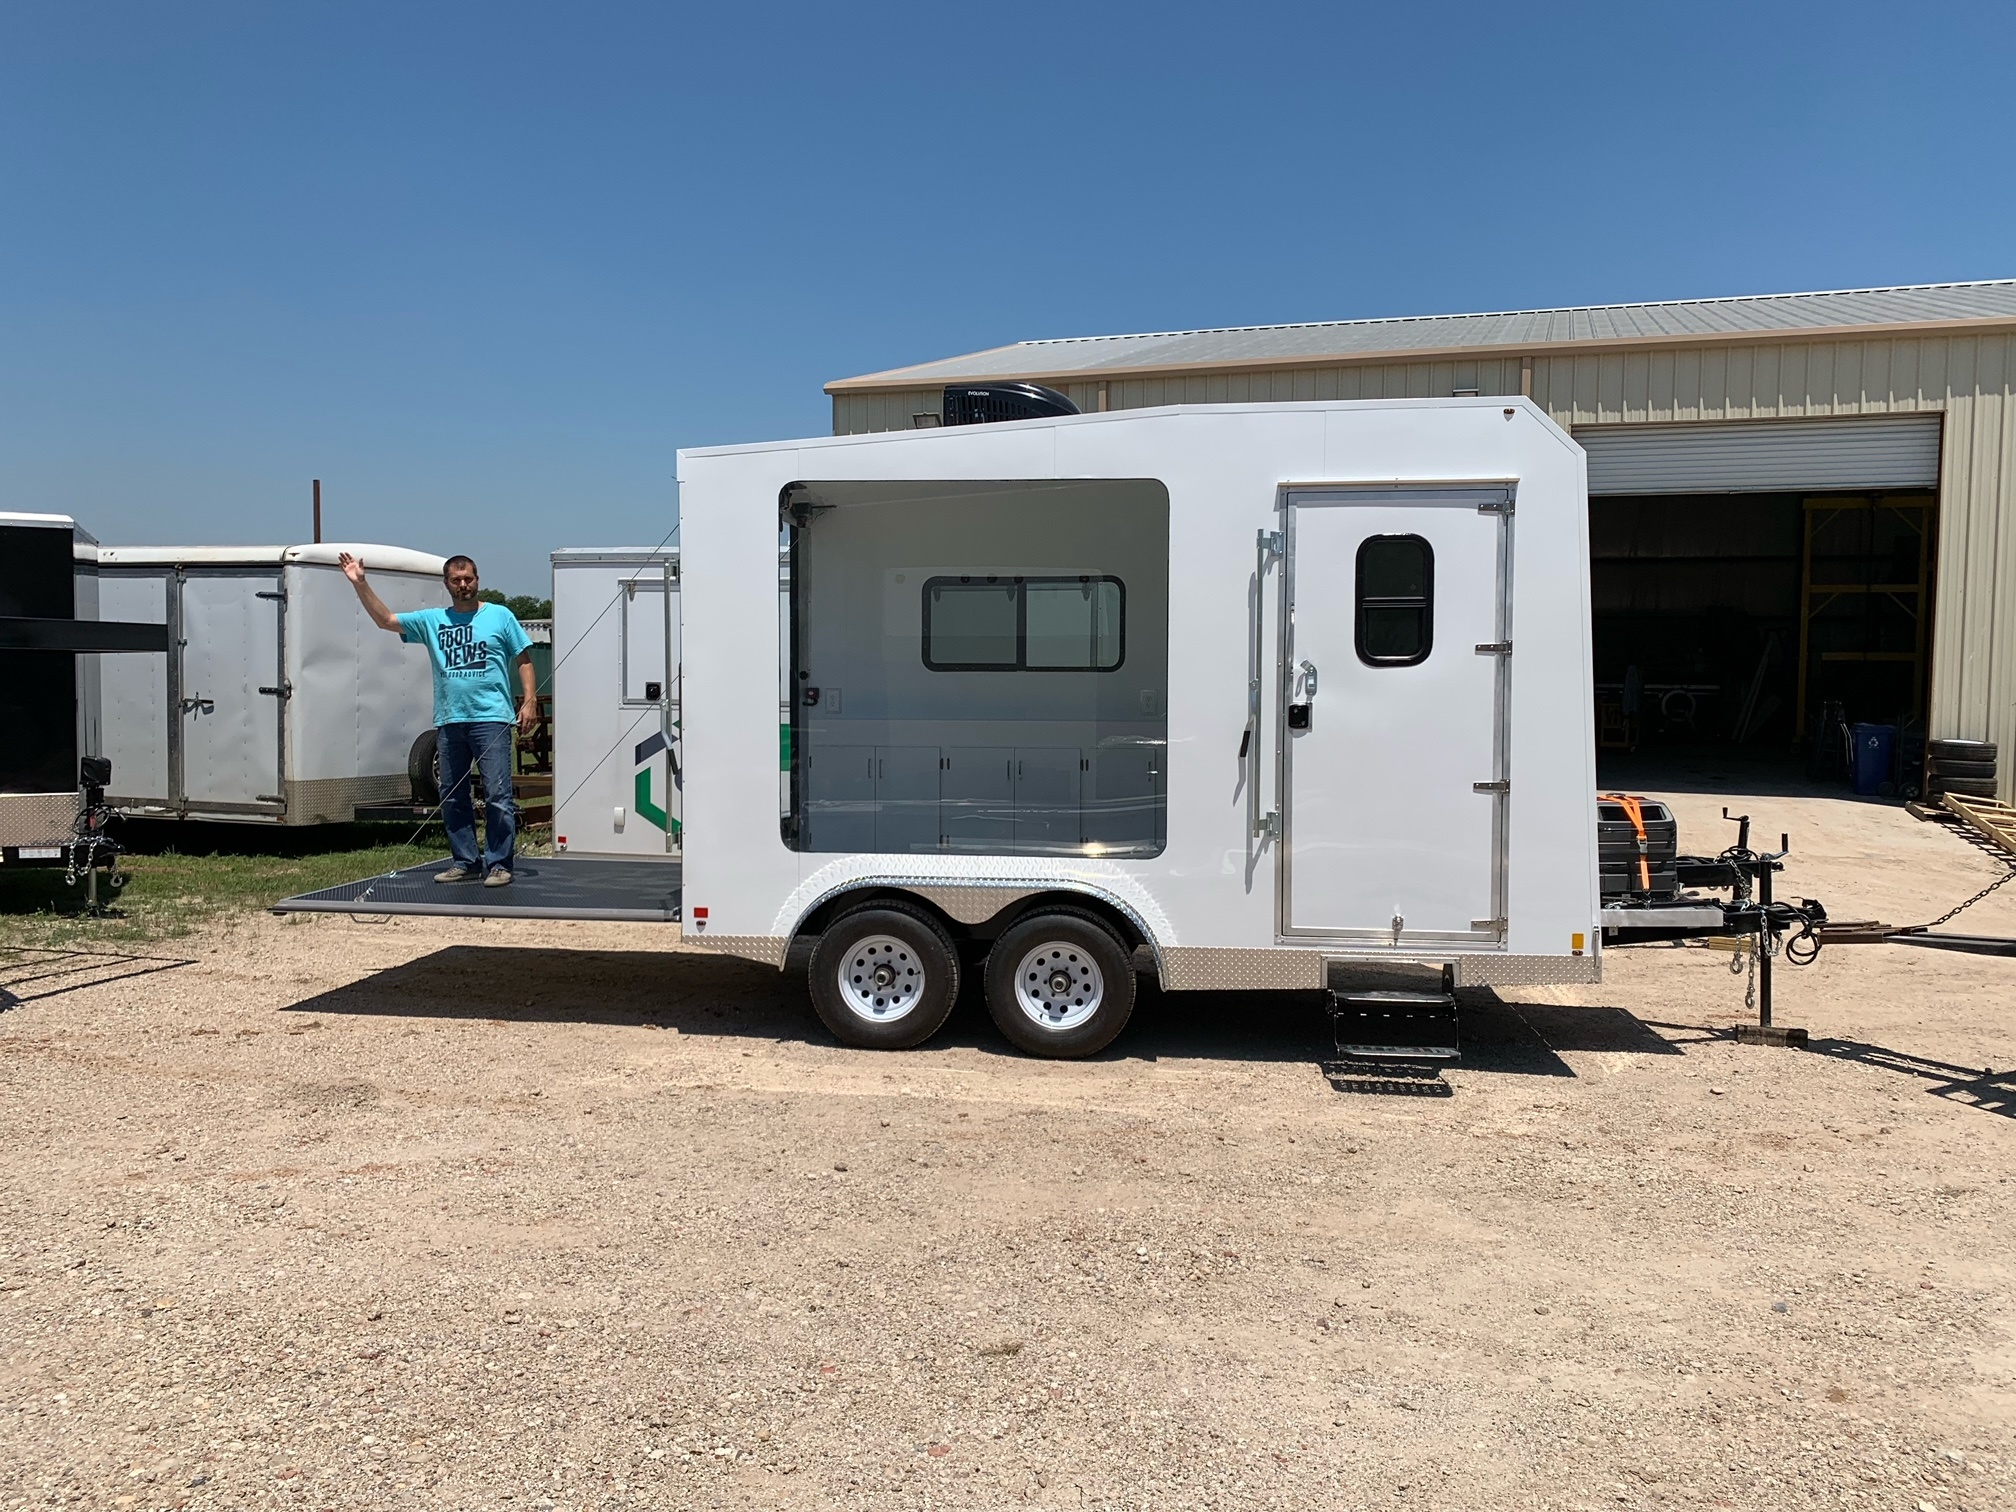 Advertising trailer stage